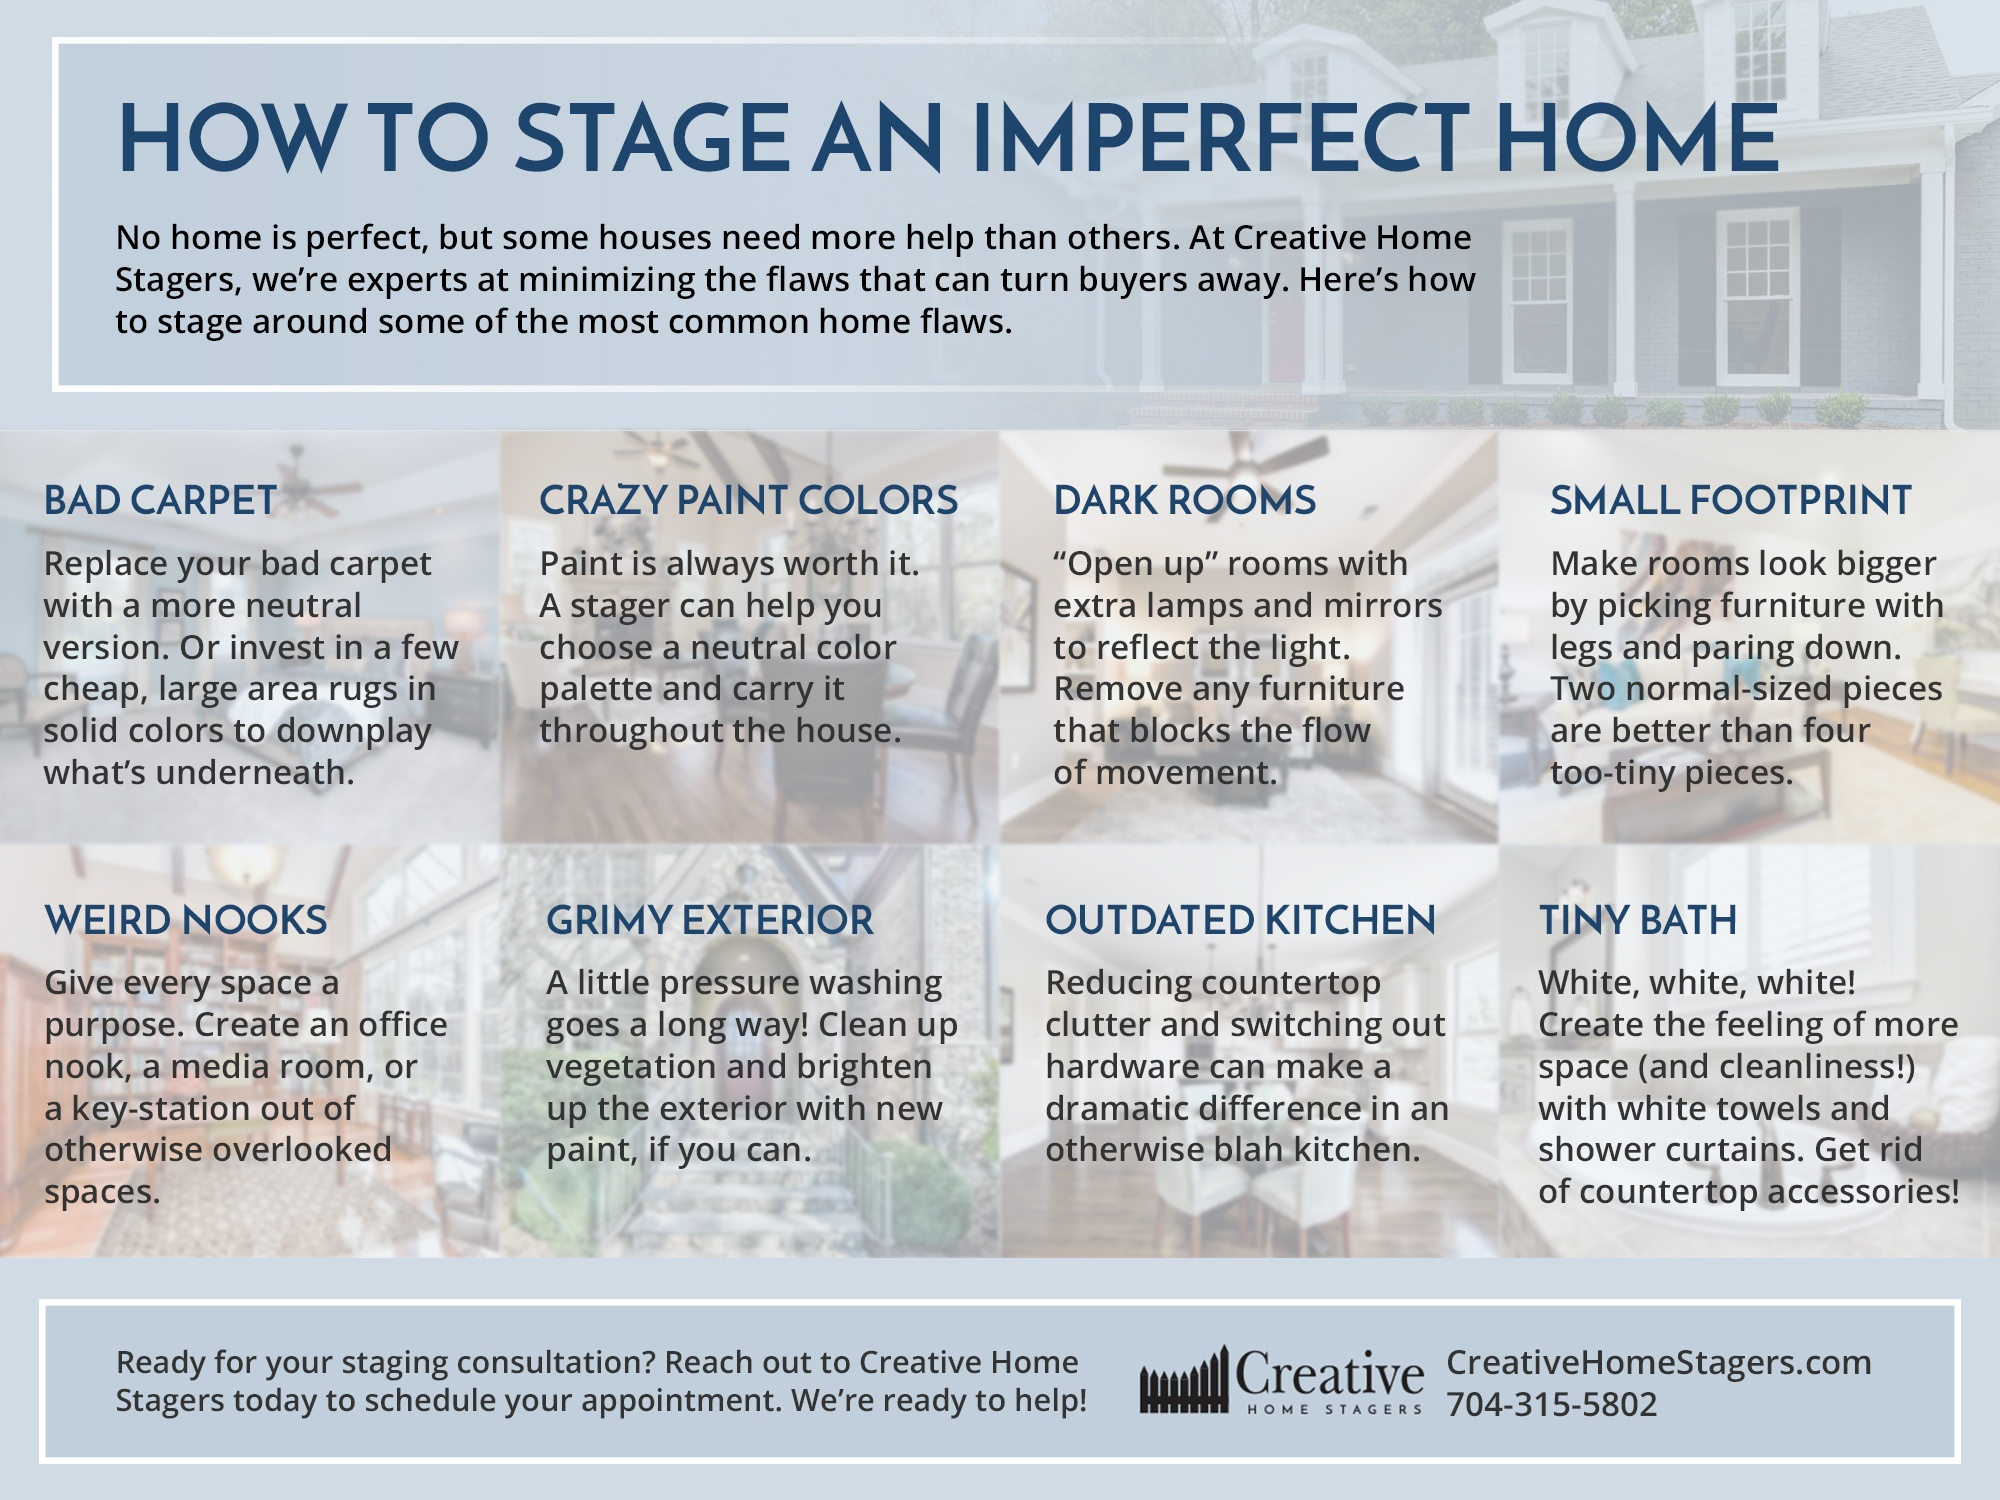 Infographic: How to Stage an Imperfect Home